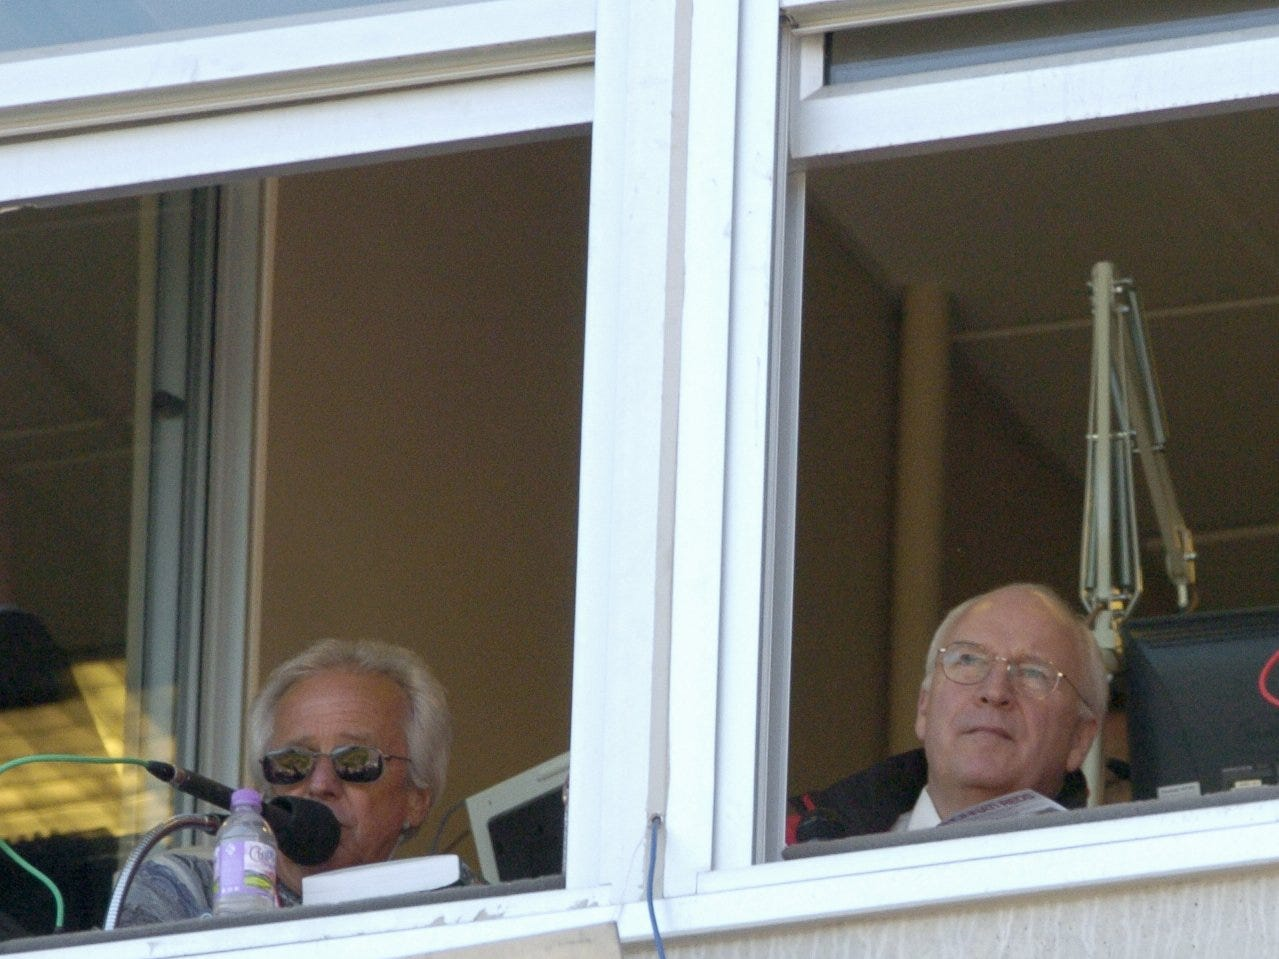 MONDAY APRIL 5, 2004 REDS SPORTS Vice-president Dick Cheney shared the broadcast booth with Reds announcer Marty Brennaman.The Chicago Cubs beat the Cincinnati Reds 7-4 in the home opener at the Great American Ball Park.